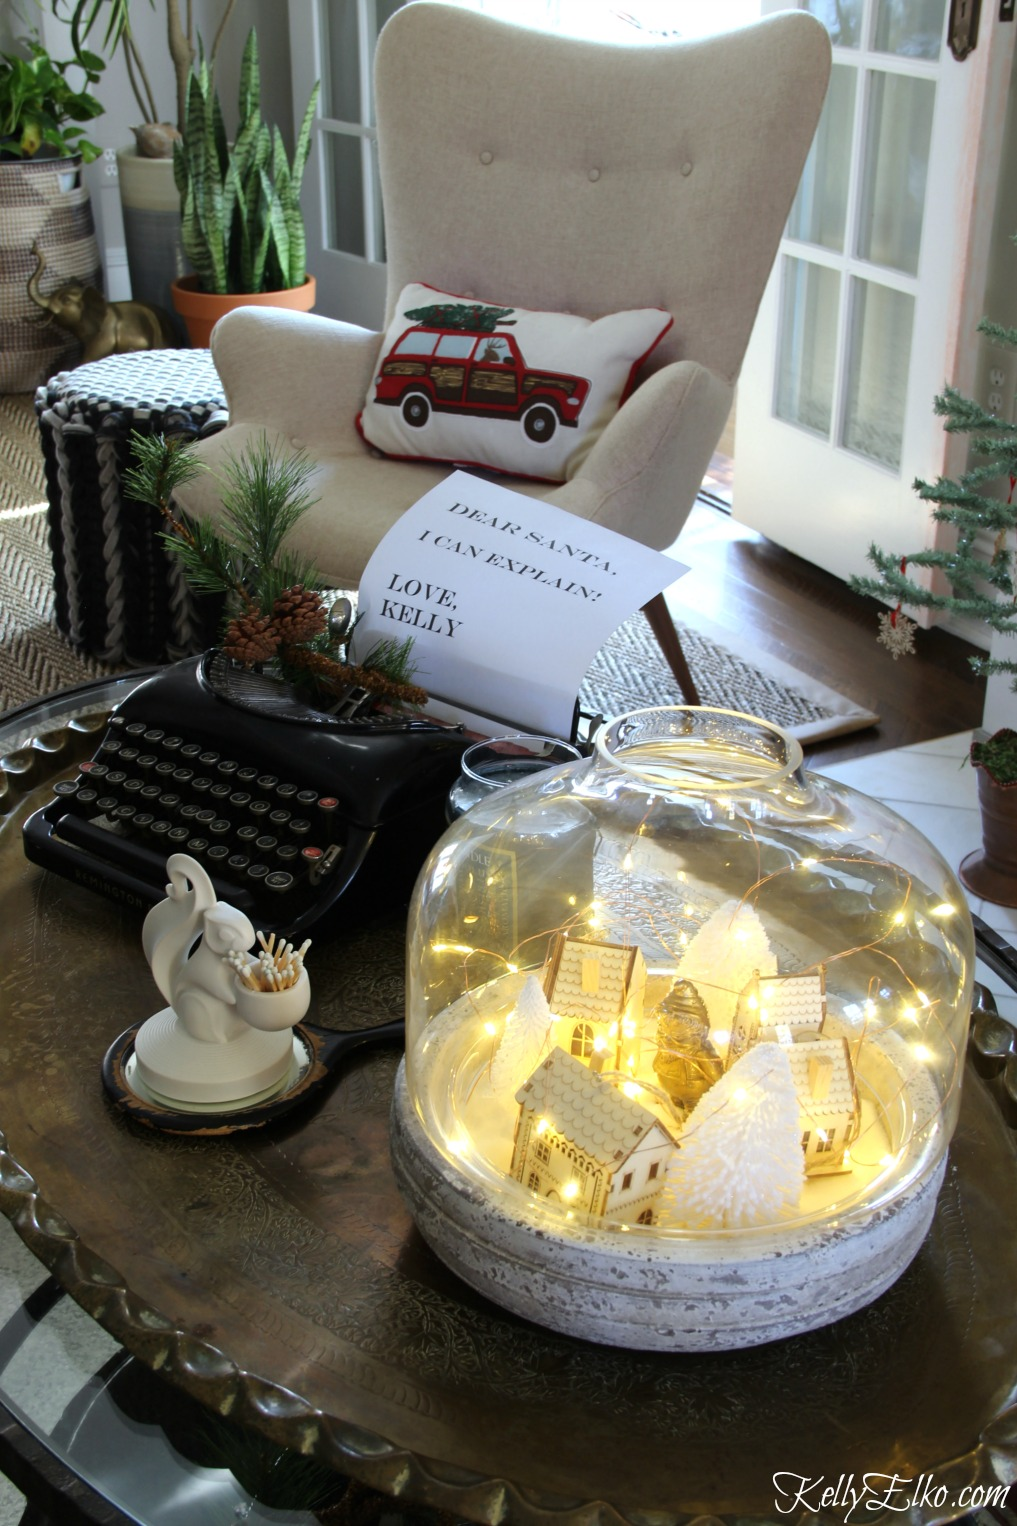 Love the vintage typewriter with a letter from Santa and the winter village jar filled with fairy lights kellyelko.com #christmas #vintagechristmas #christmasdecor #diychristmasdecor #terrarium #christmasdecorating #kellyelko